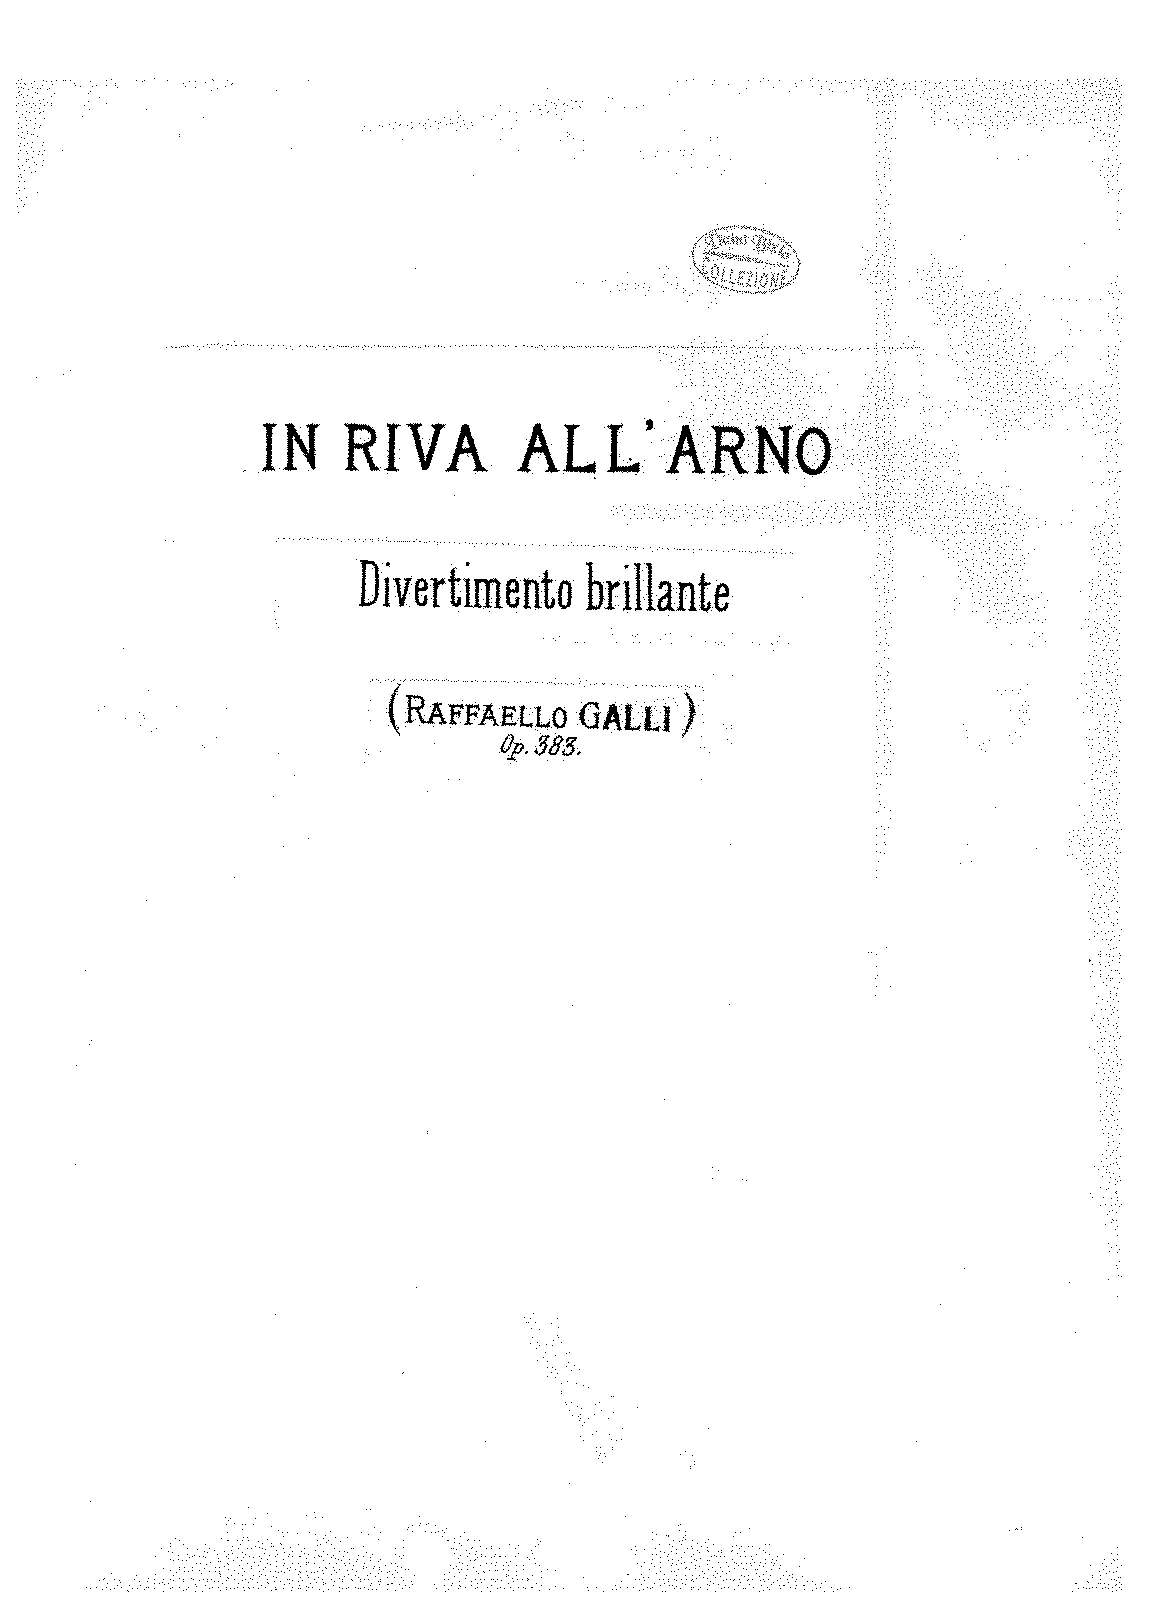 PMLP503314-Galli in riva 383.pdf